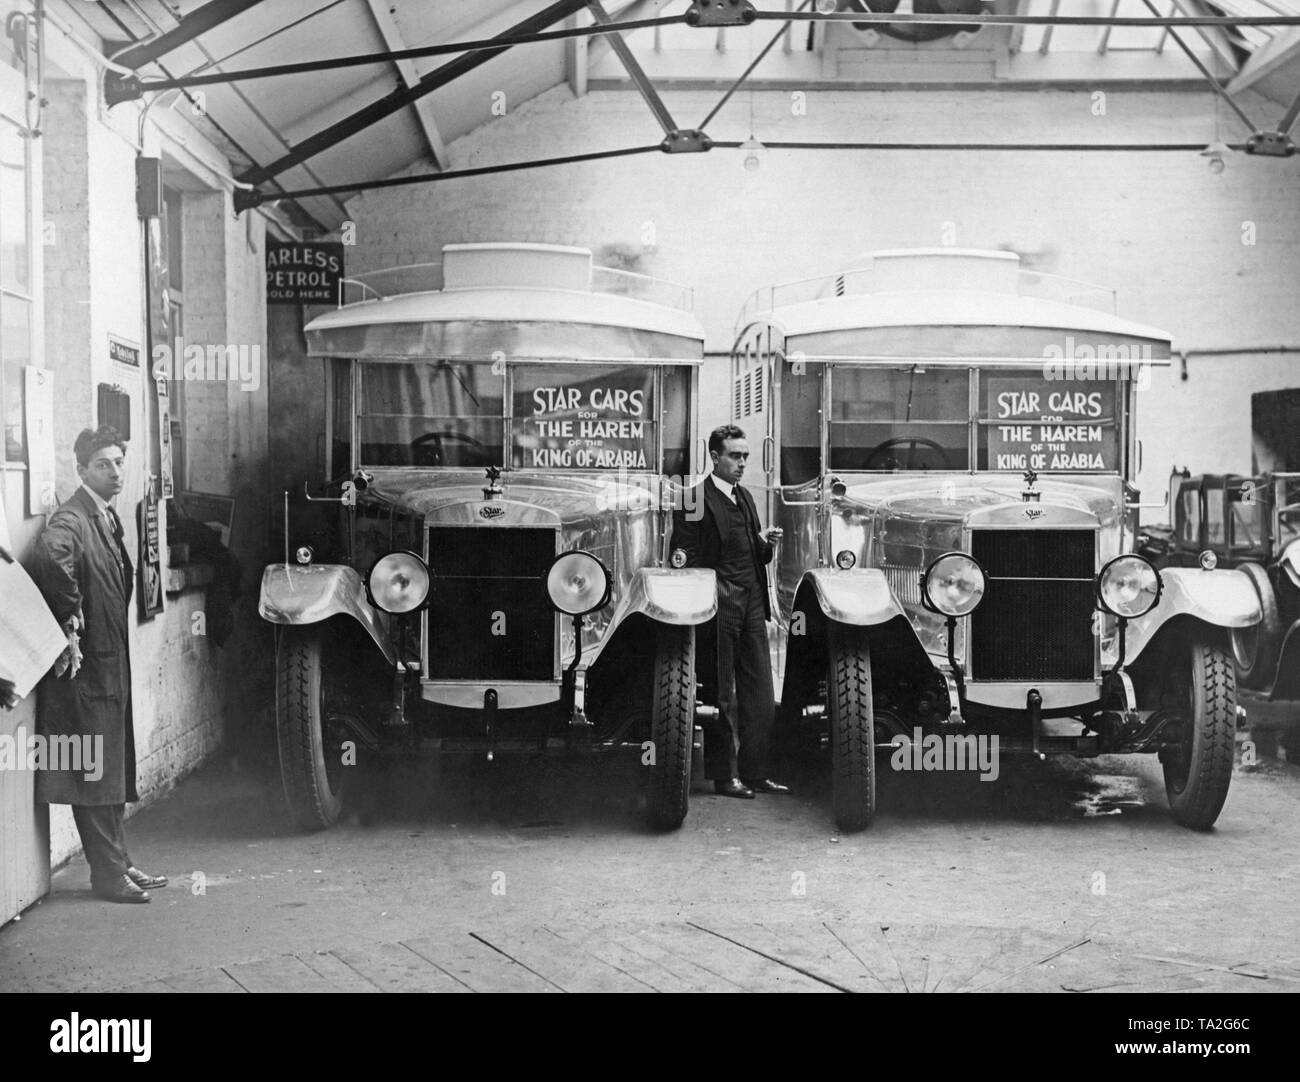 Two cars are waiting in a garage to be used by the harem of Saudi king Abd al-Aziz ibn Saud during his visit to London. The Star Motor Company has manufactured the cars for the King. They do not have windows but a closed passenger compartment with ventilation slots. - Stock Image